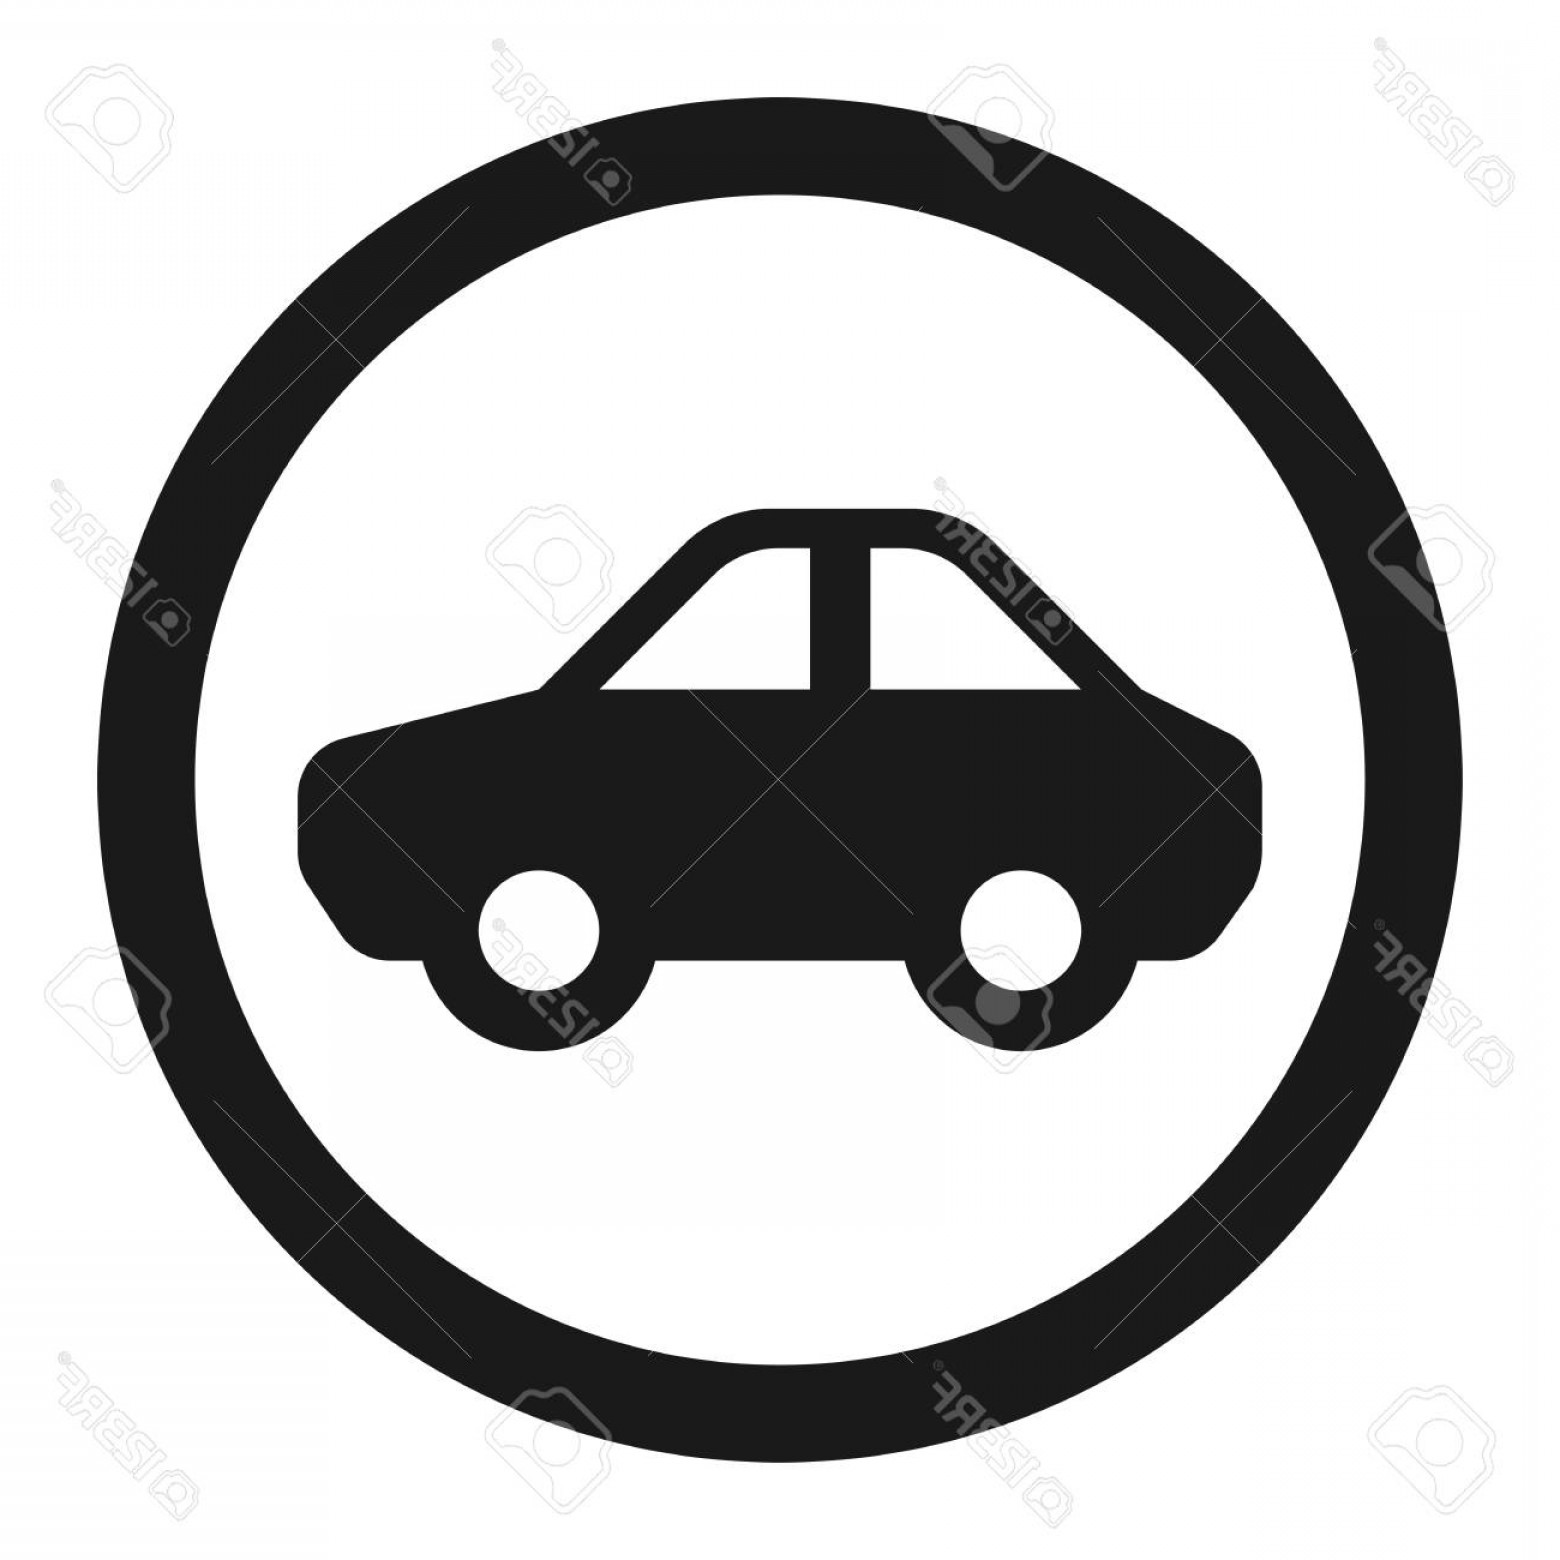 Motor Vector Graphics: Photostock Vector No Motor And Car Line Icon Traffic And Road Sign Vector Graphics A Solid Pattern On A White Backgrou